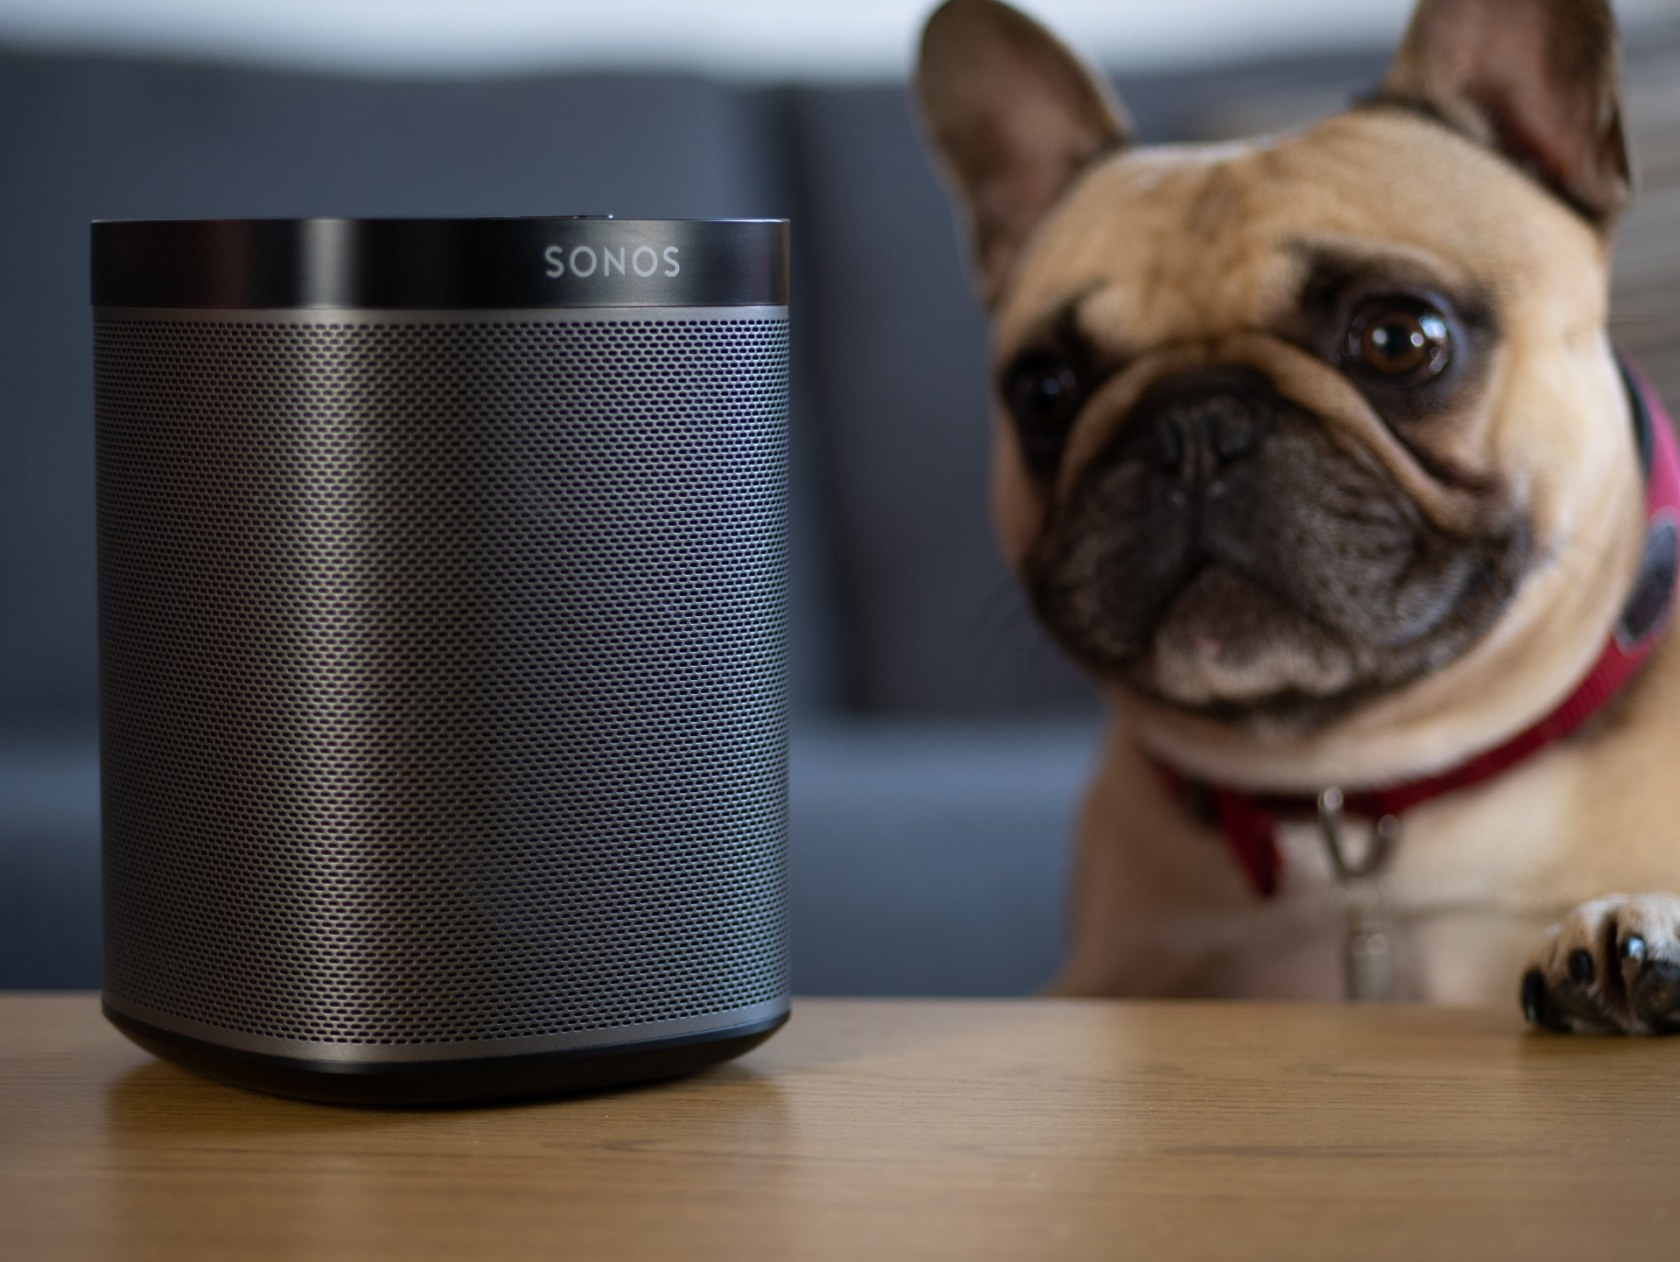 Sonos will no longer require customers to brick their old devices for a discount on new ones